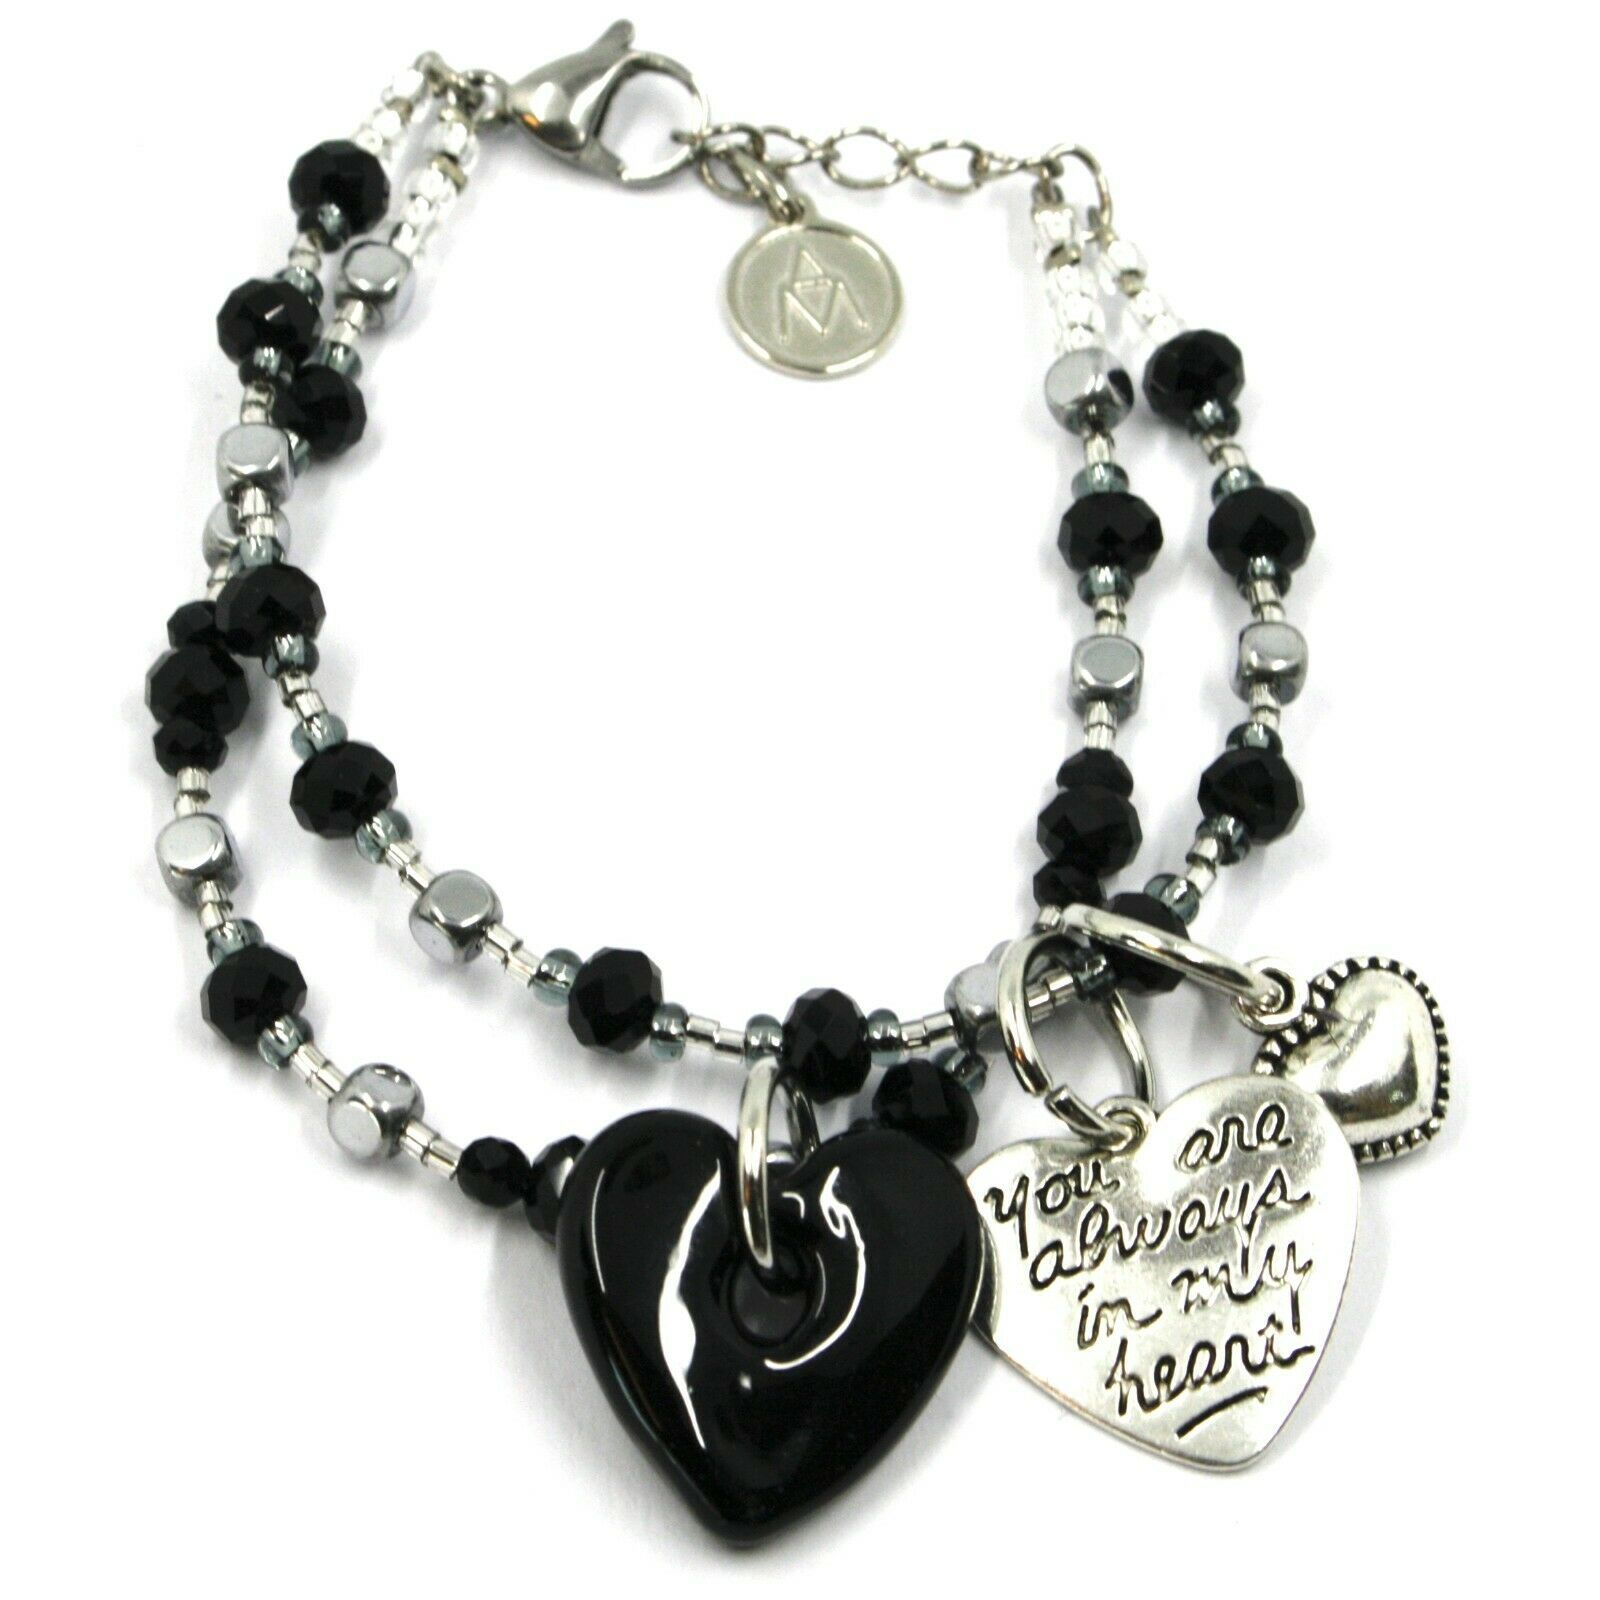 Bracelet Antica Murrina Venezia, BR843A14, Double Thread, Heart Glass Black